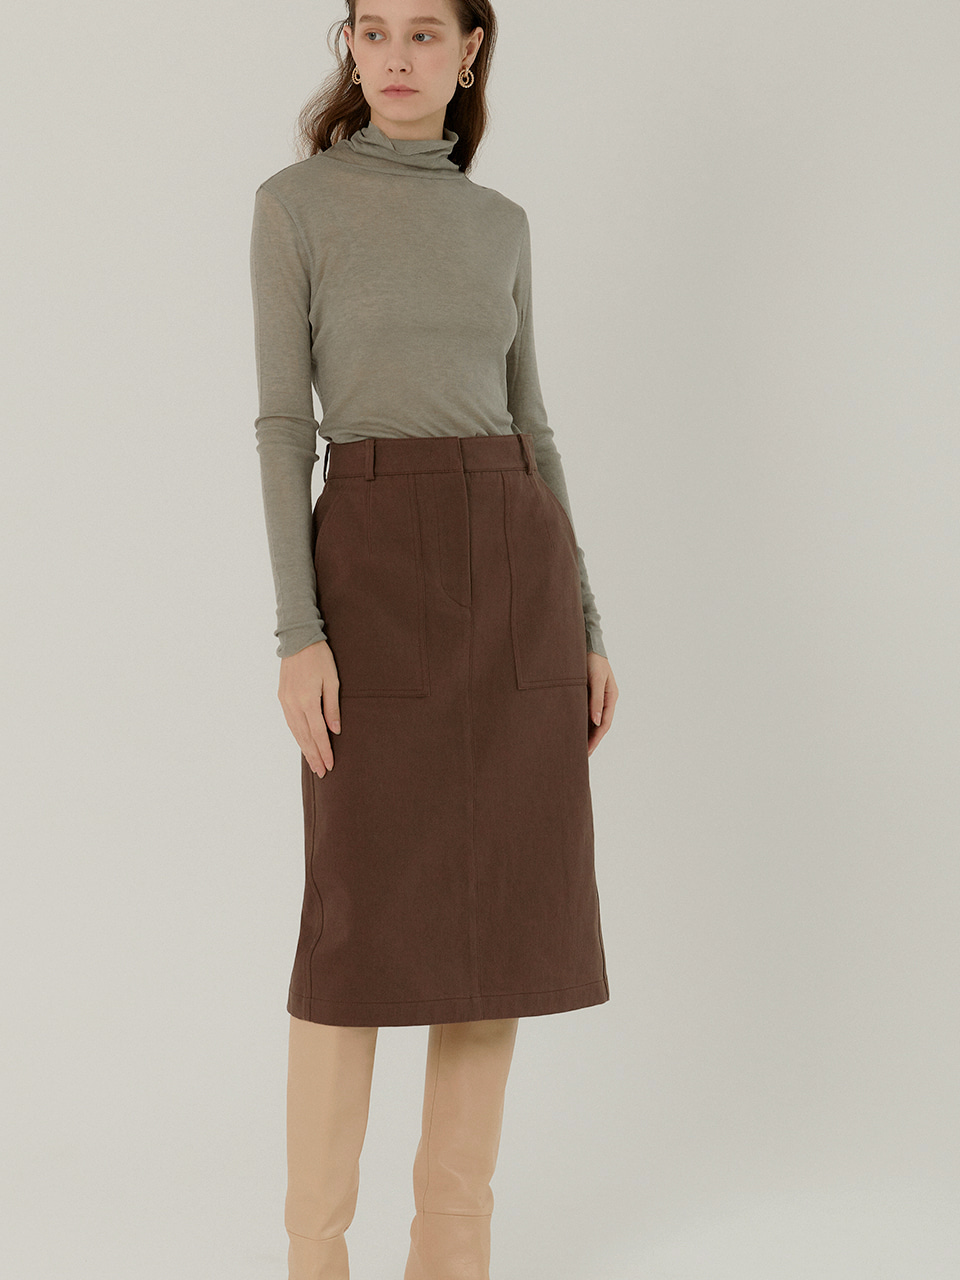 JESS_Cotton Twill Straight Midi Skirt_MOCHA BROWN